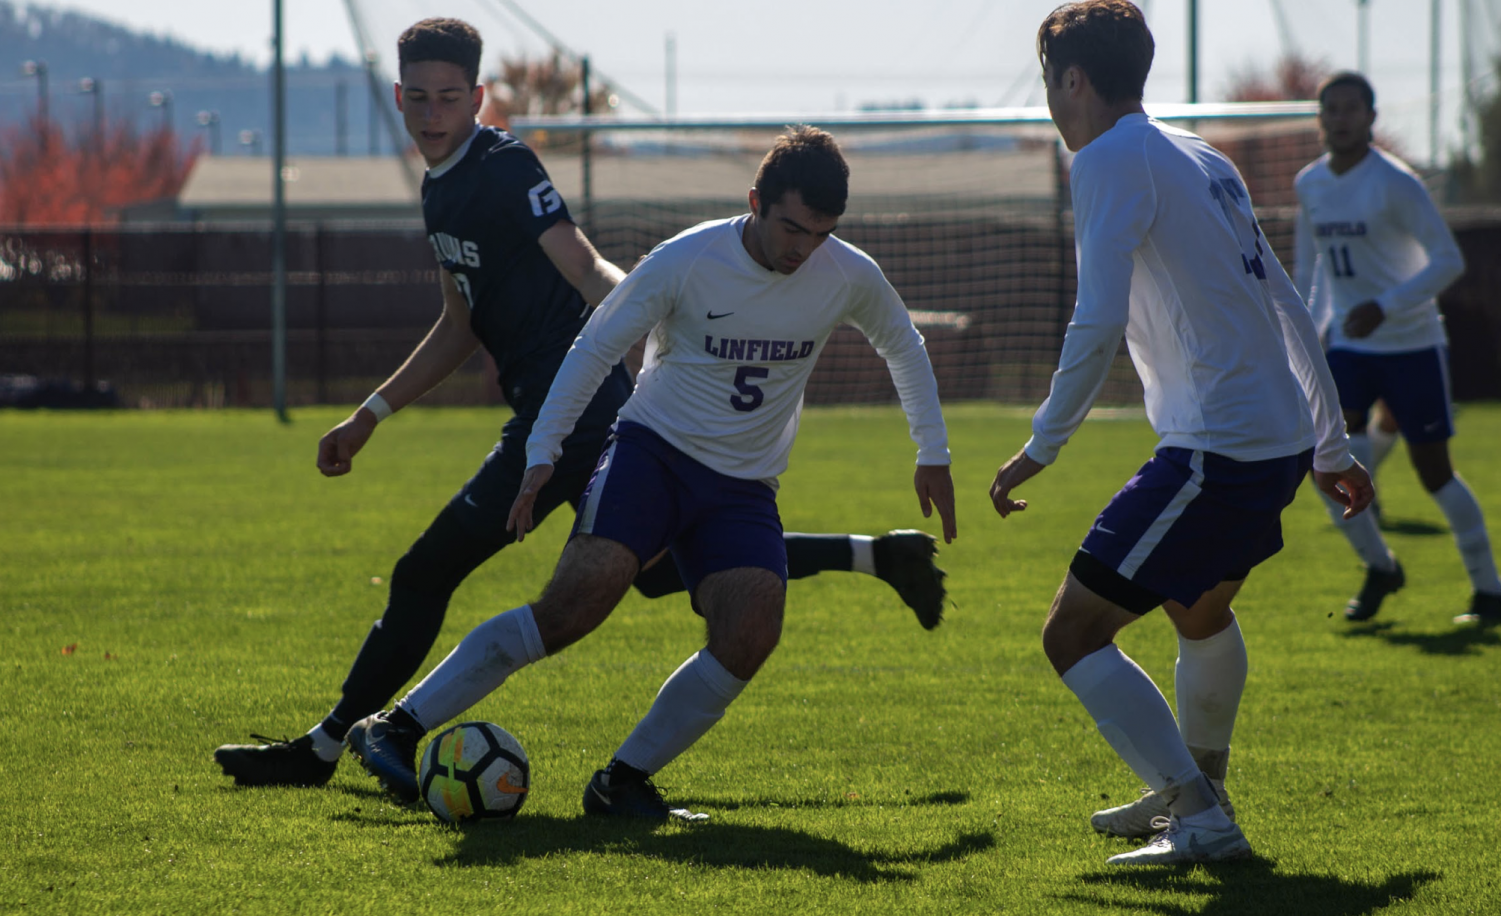 Ryan Kister fights for possession of the ball